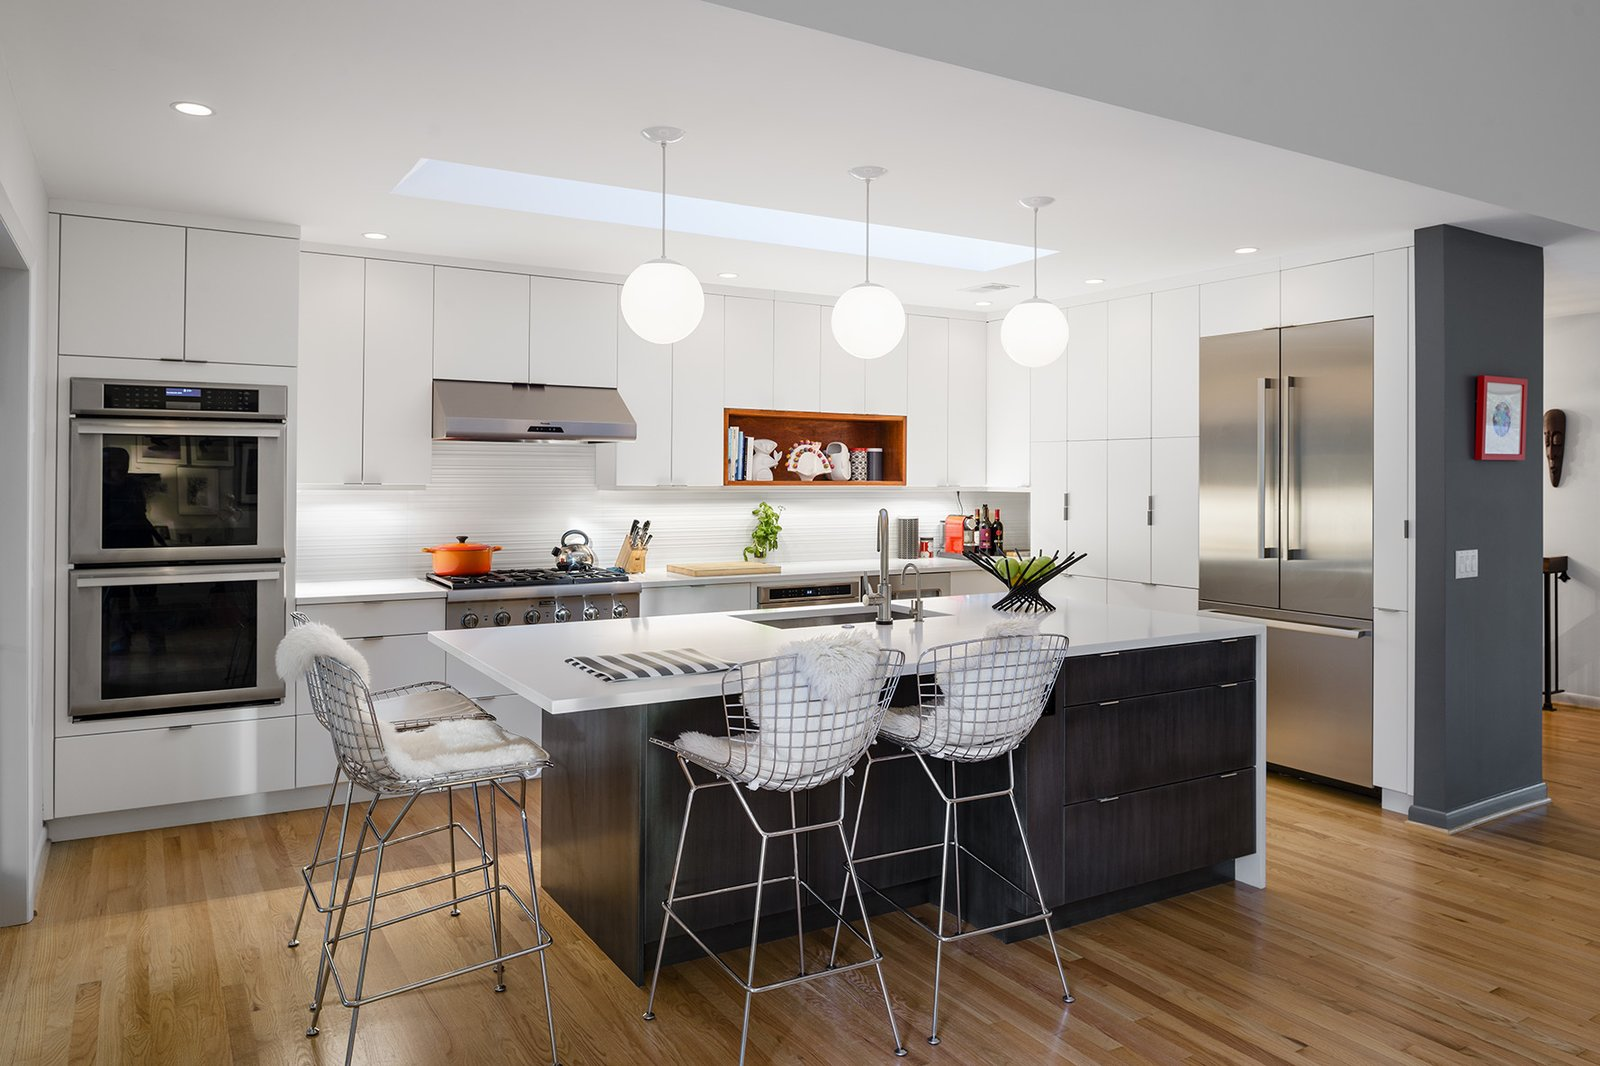 Colorful R And D Kitchen Yountville Vignette - Kitchen Cabinets ...